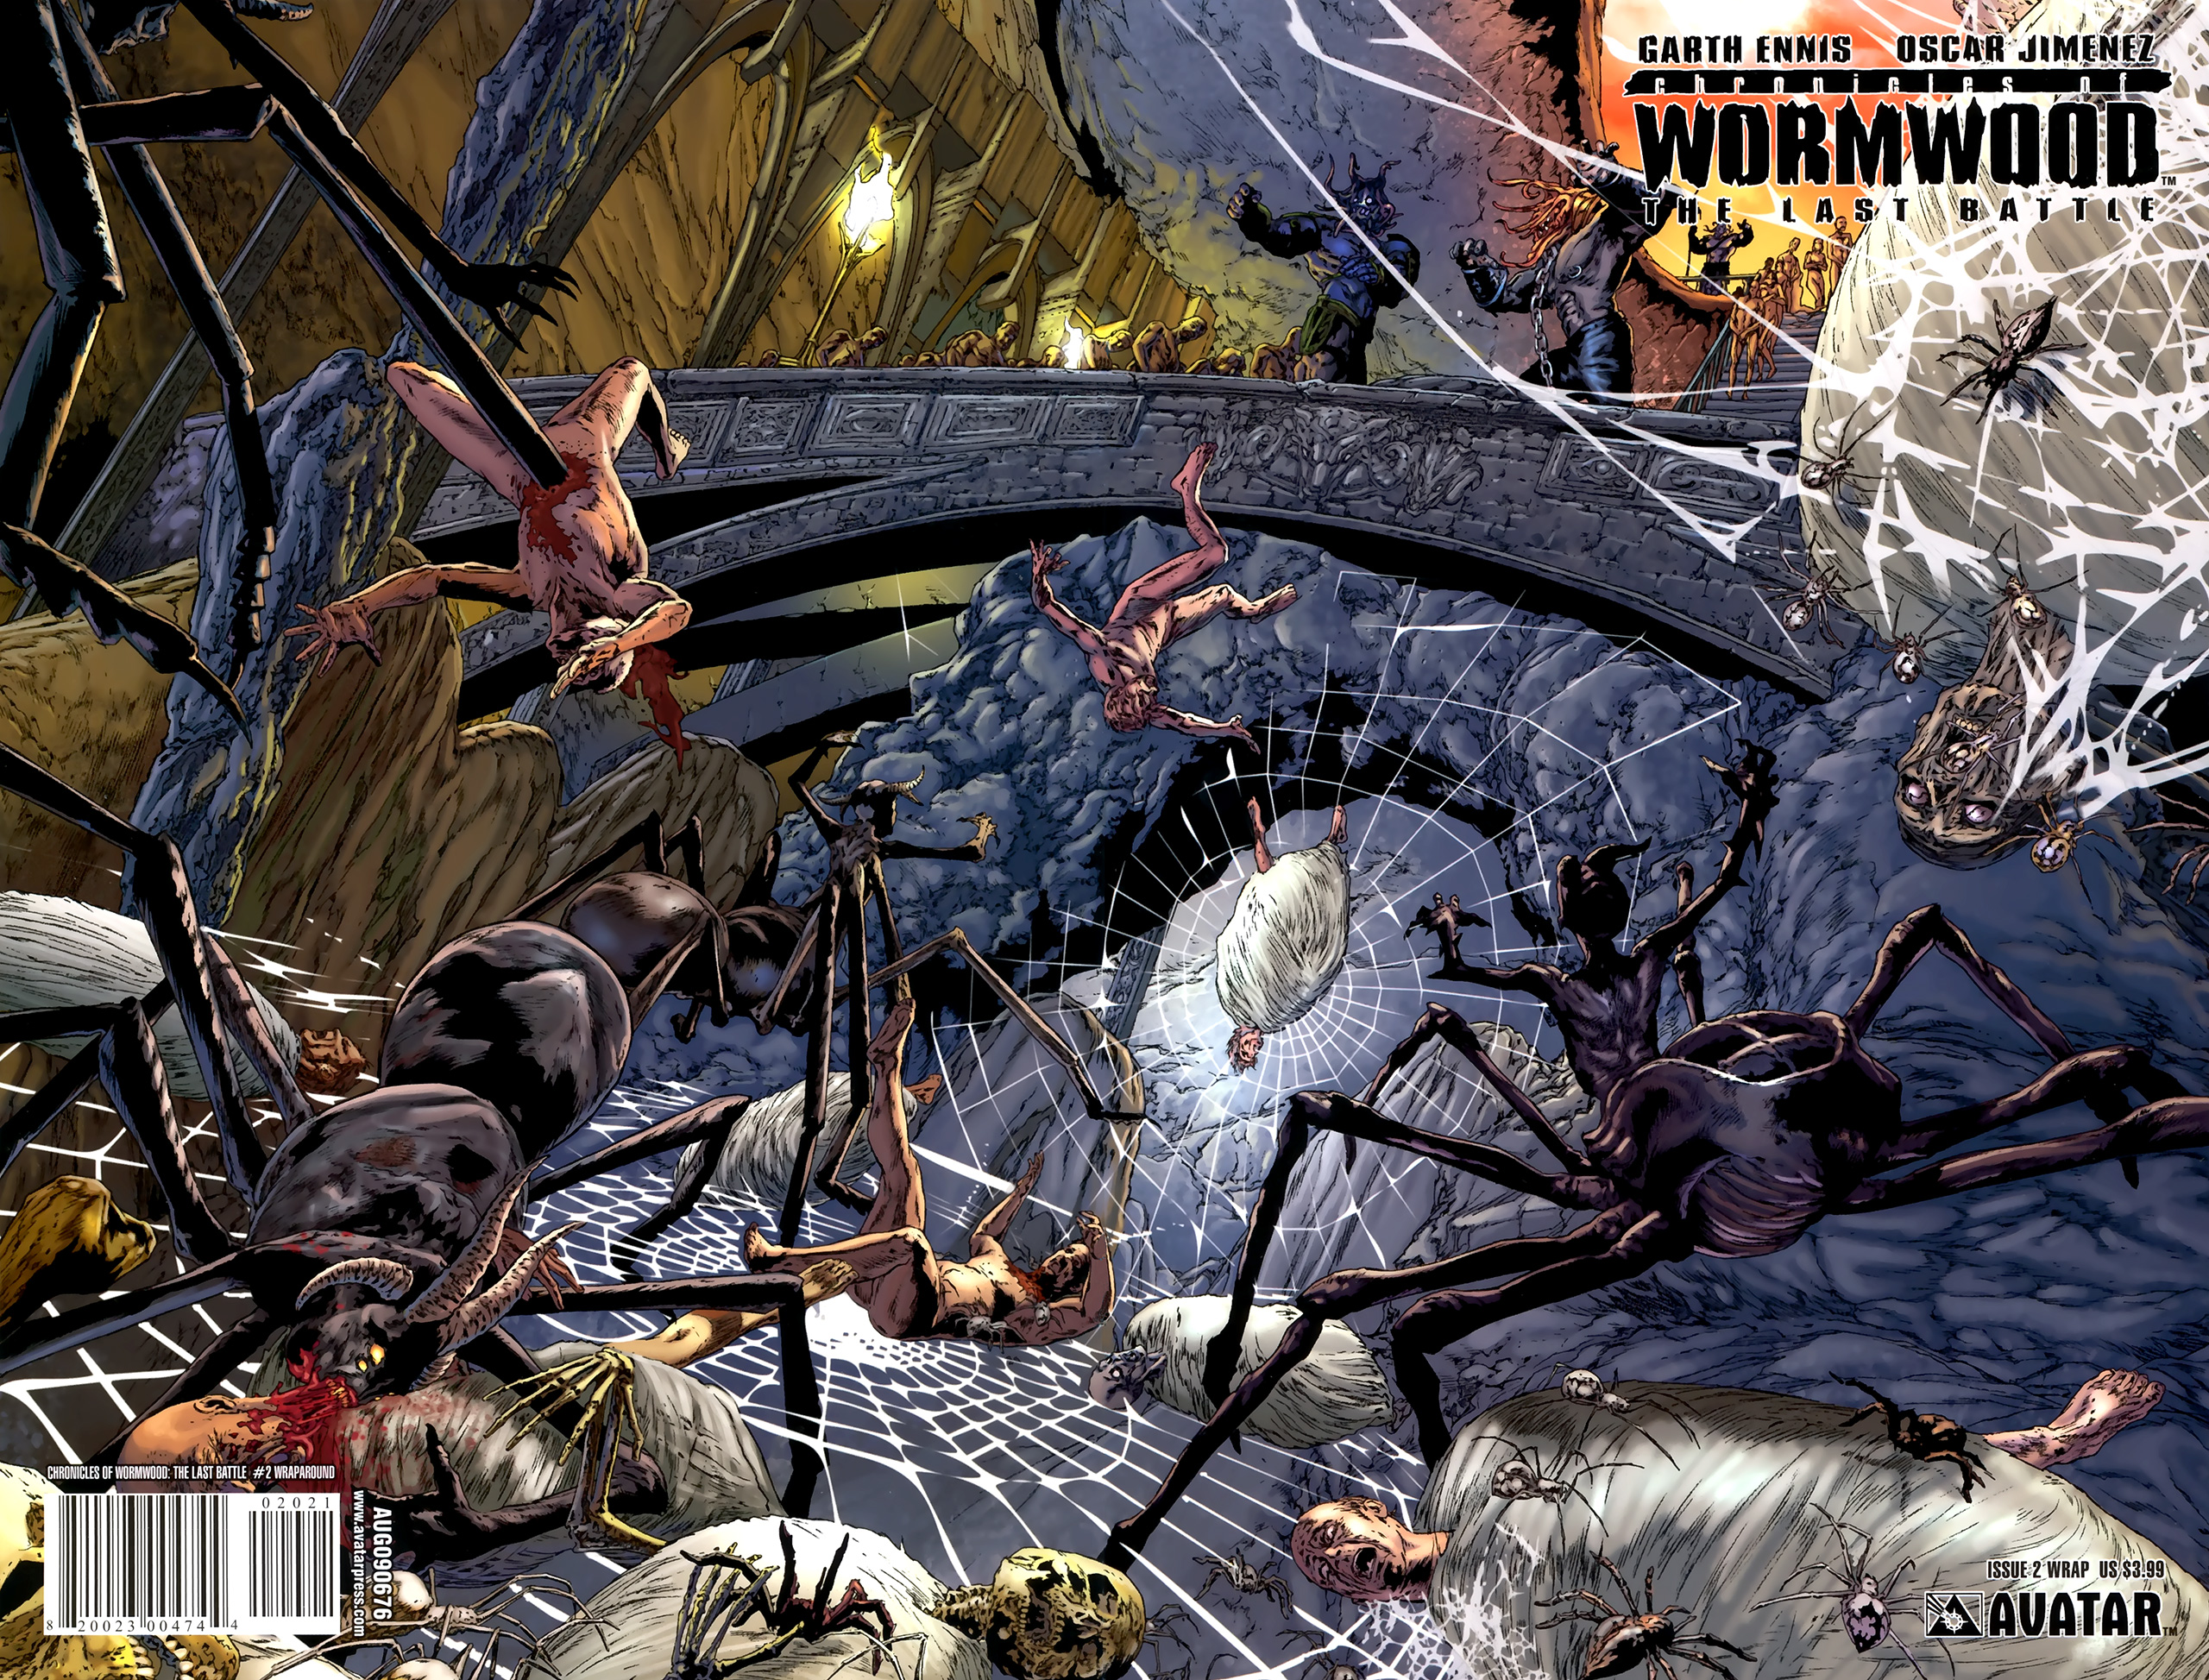 Read online Chronicles of Wormwood: The Last Battle comic -  Issue #2 - 2